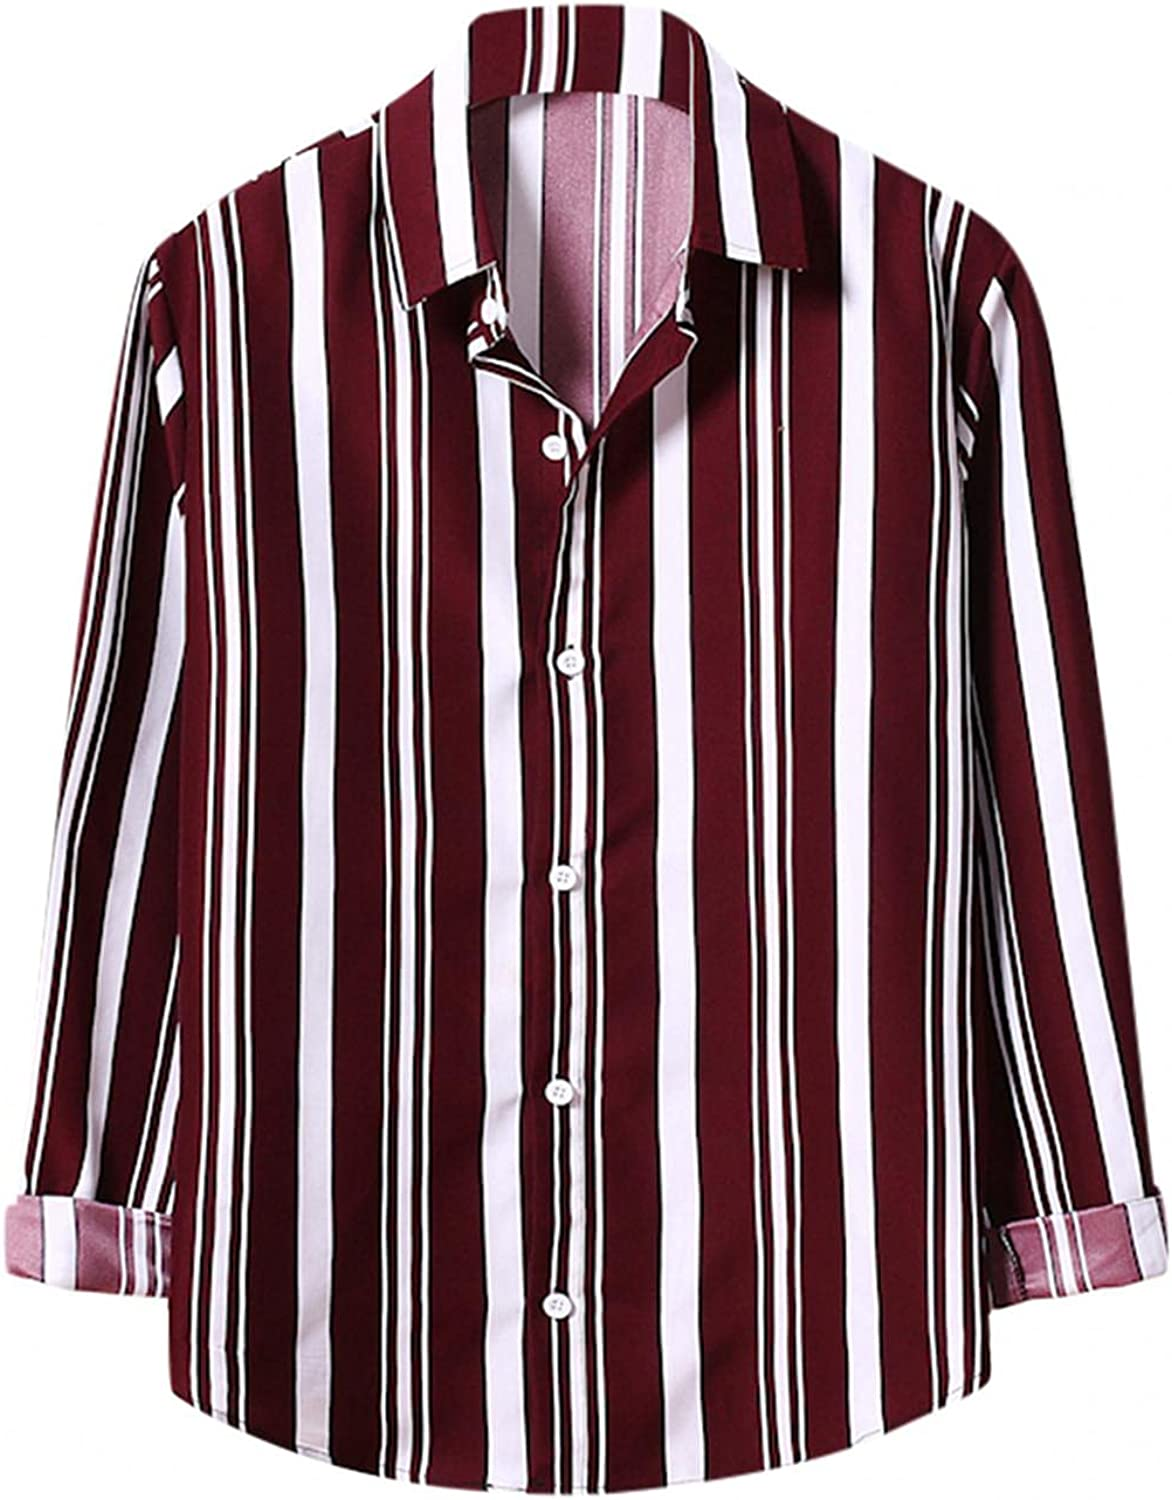 T Shirts for Men Long Sleeve Lapel Striped Tops Fashion Casual Color Block Button Down Blouse Classic Slim Fit Shirt